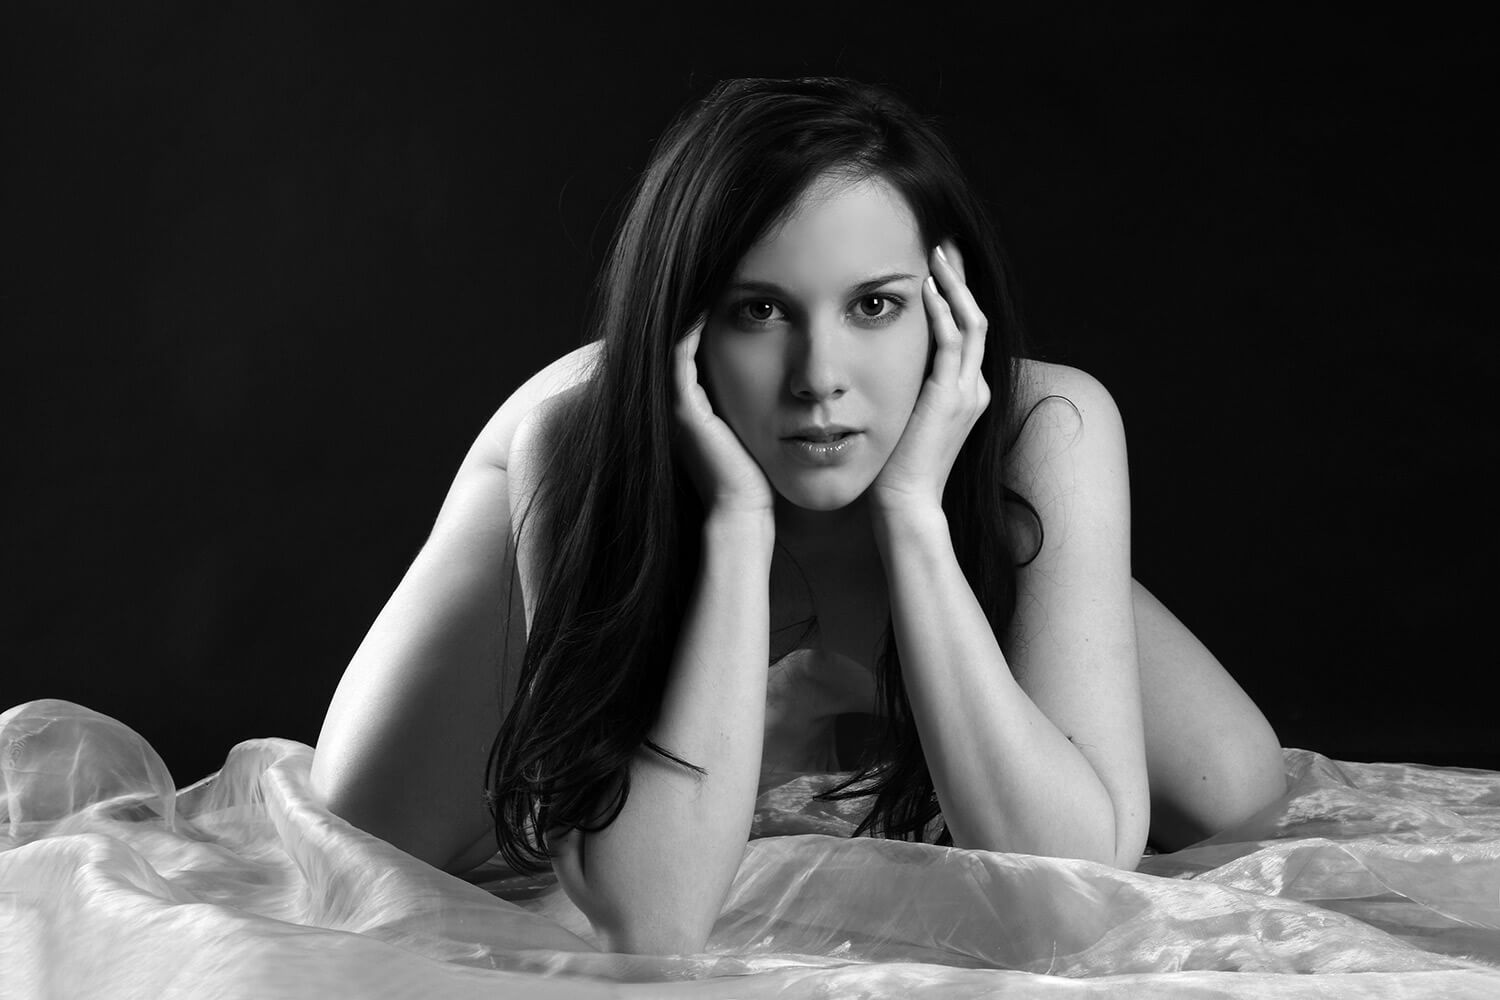 black and white boudoir photo of a woman